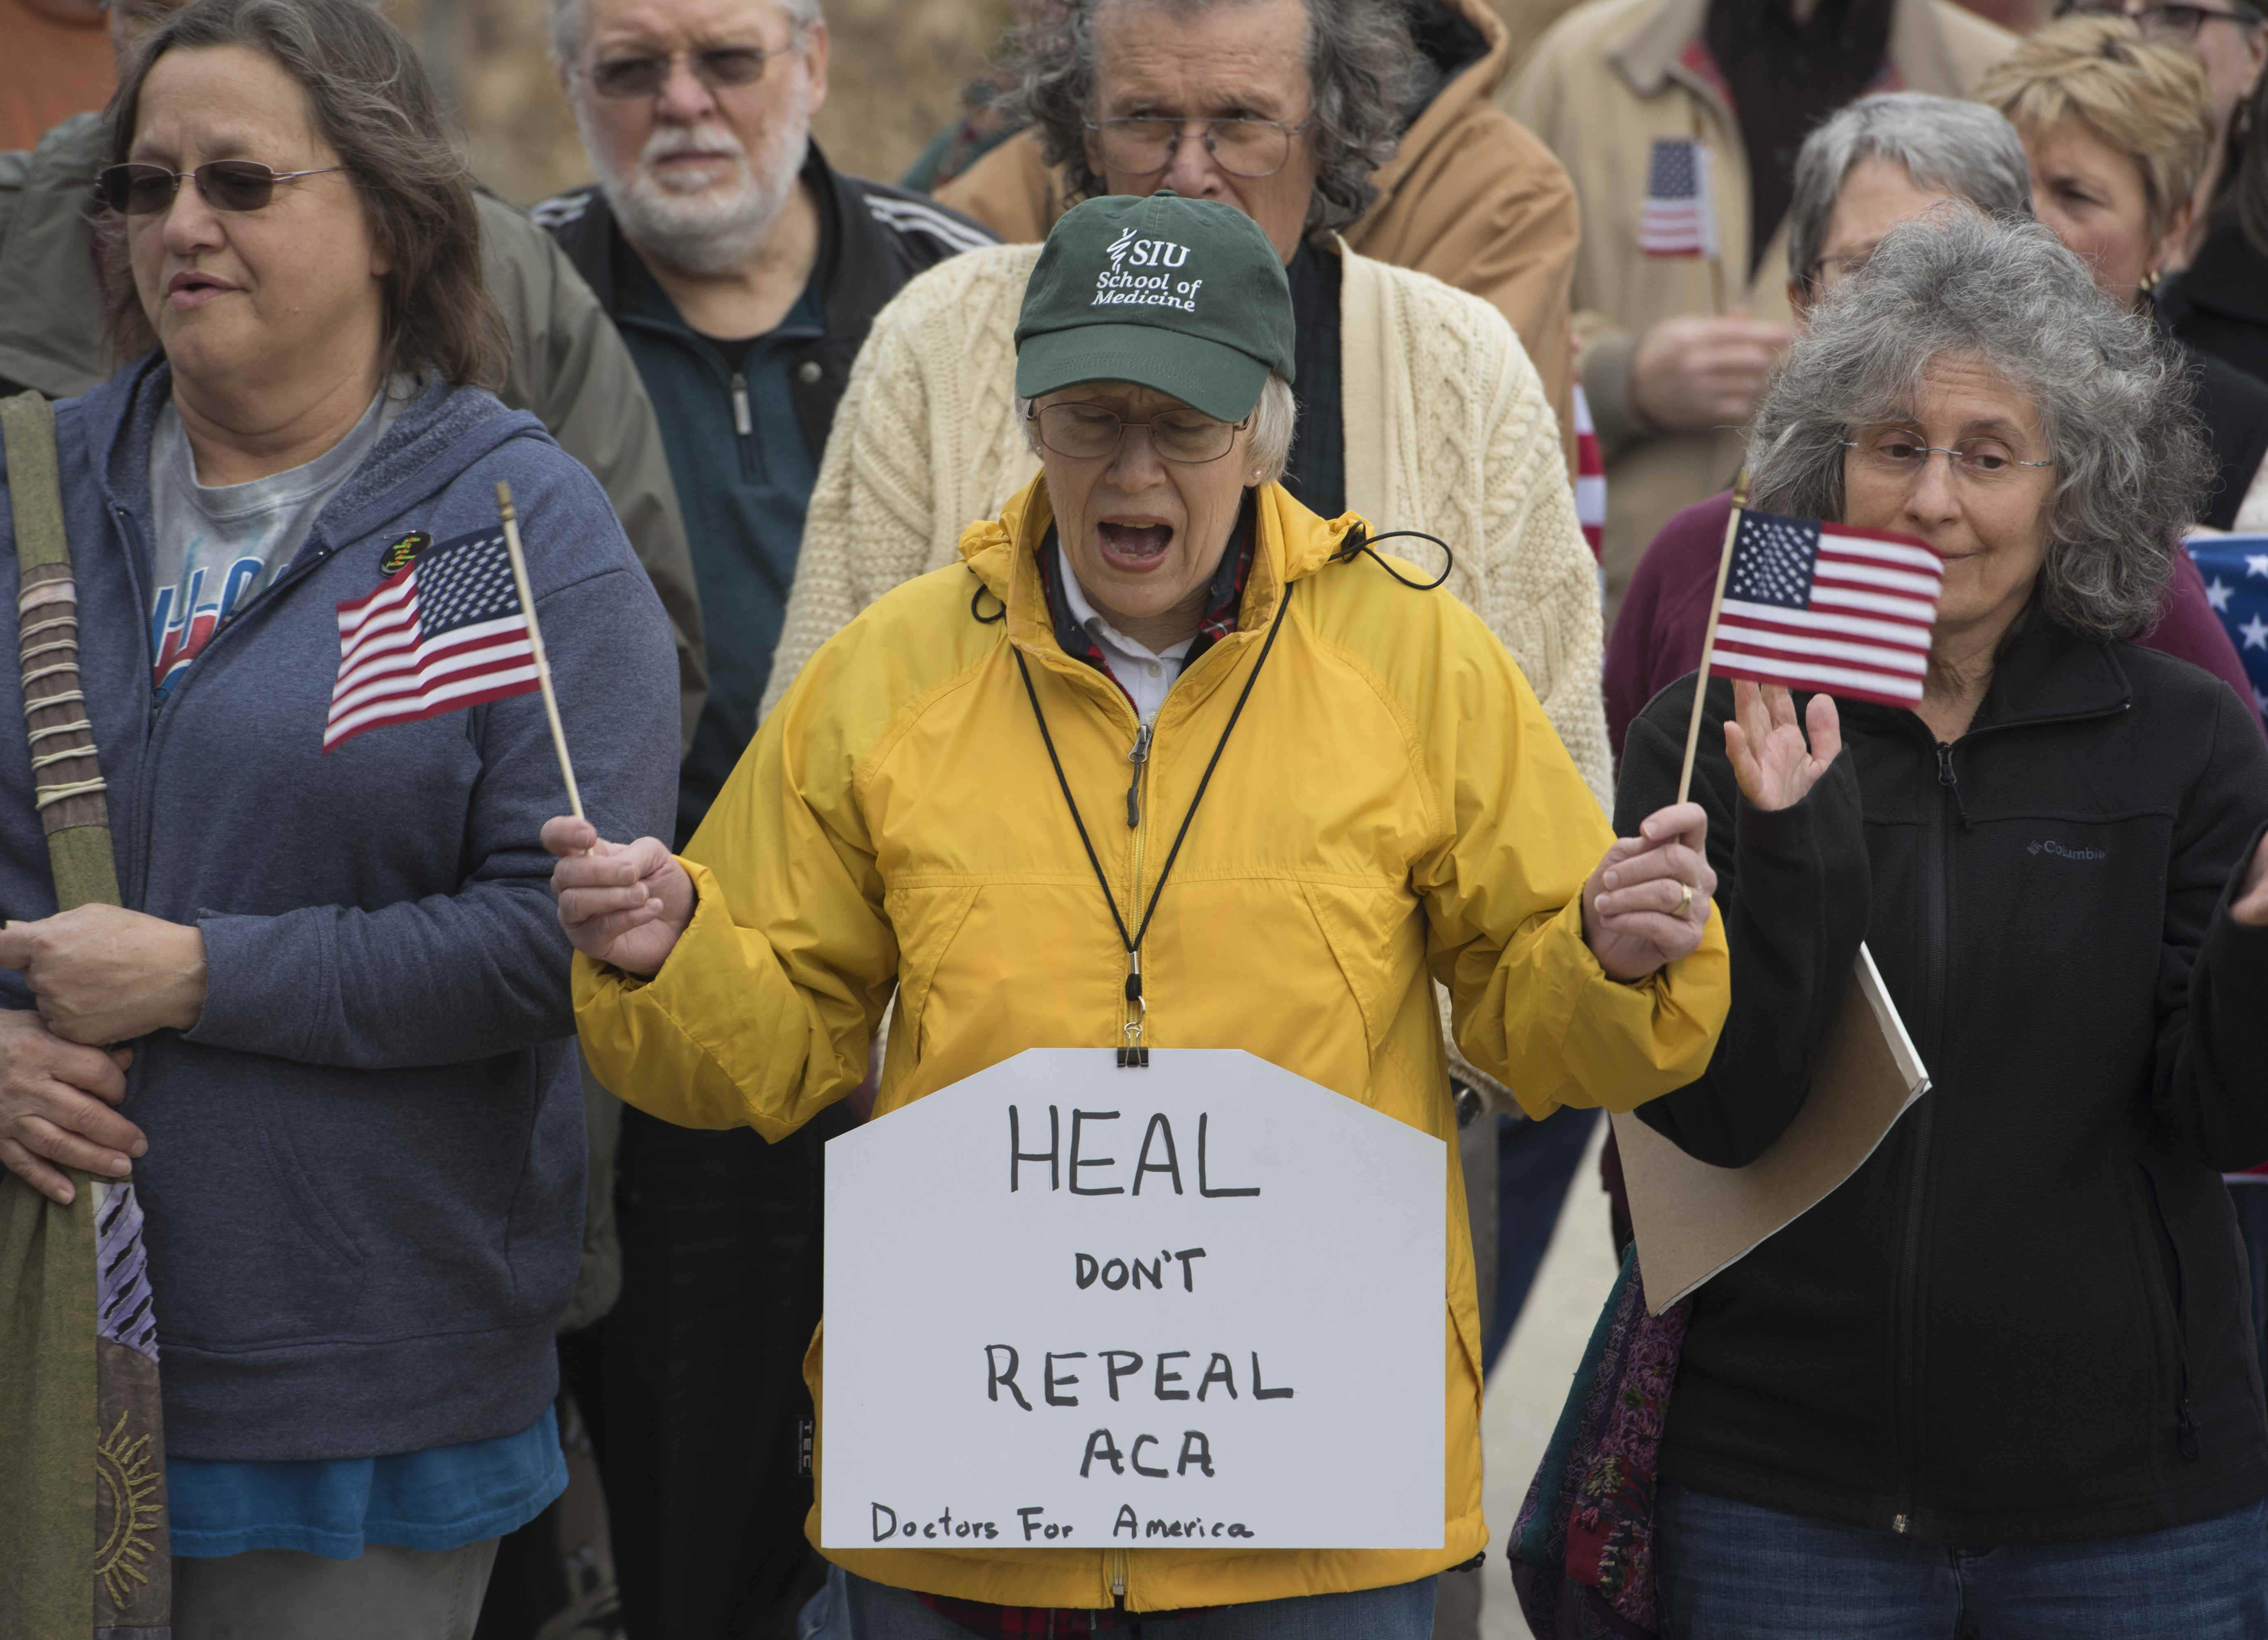 Protesters gathered at the office of Republican Rep. Mike Bost on Tuesday, Feb. 21, 2017,  to demand he support the Affordable Care Act. Bost twice voted to repeal the act while former President Barack Obama was in office and has said he supports an alternative approach to providing health care for Americans. (Bill Lukitsch | @lukitsbill)